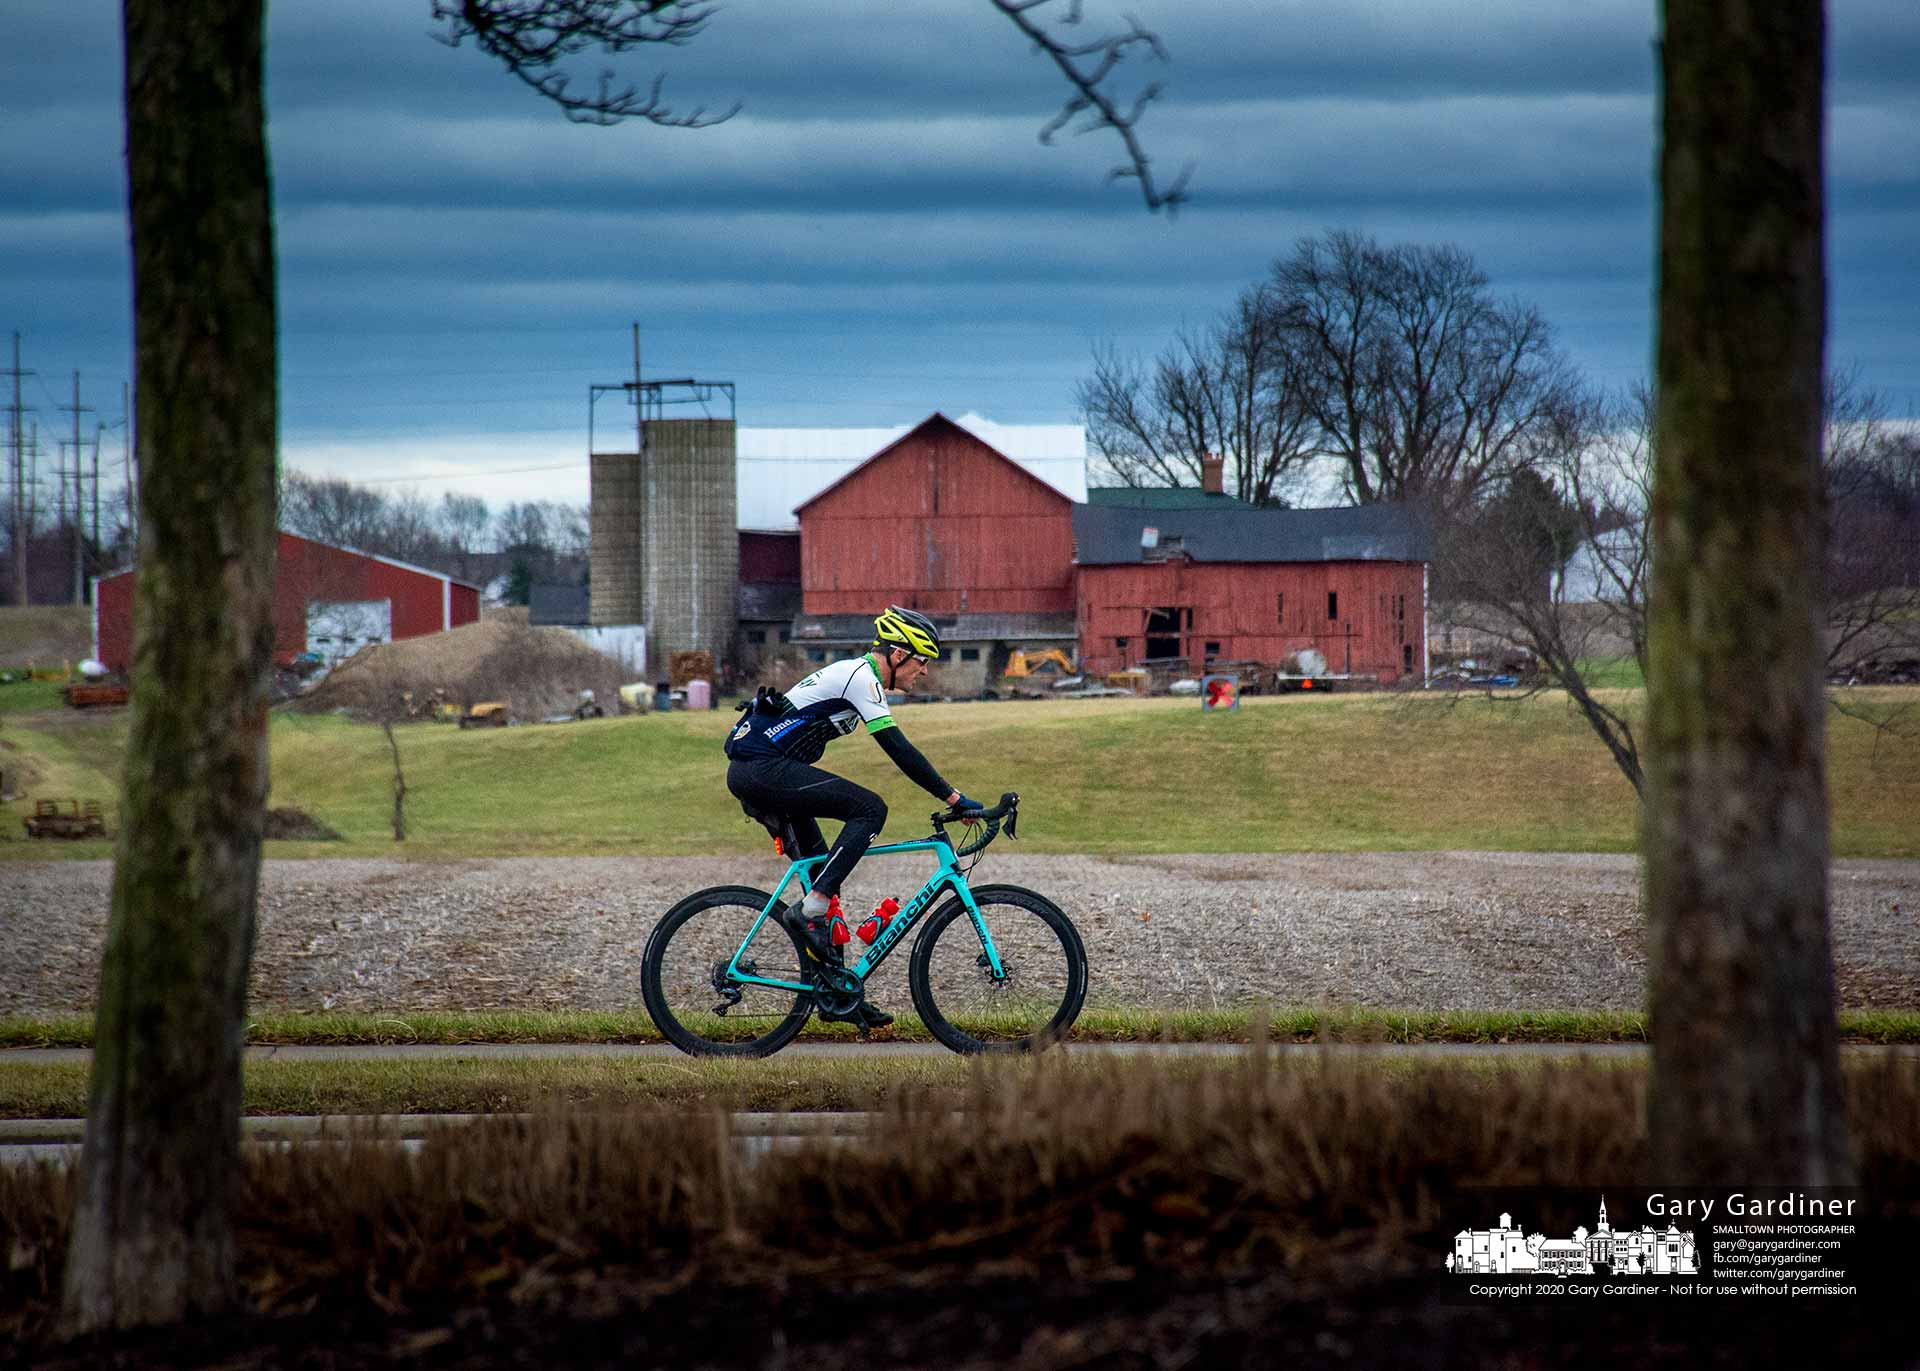 A cyclist passes the lower acres below the Yarnell farm barns as he works his way through an energetic ride on an unusually warm mid-January day. My Final Photo for Jan. 11, 2020.